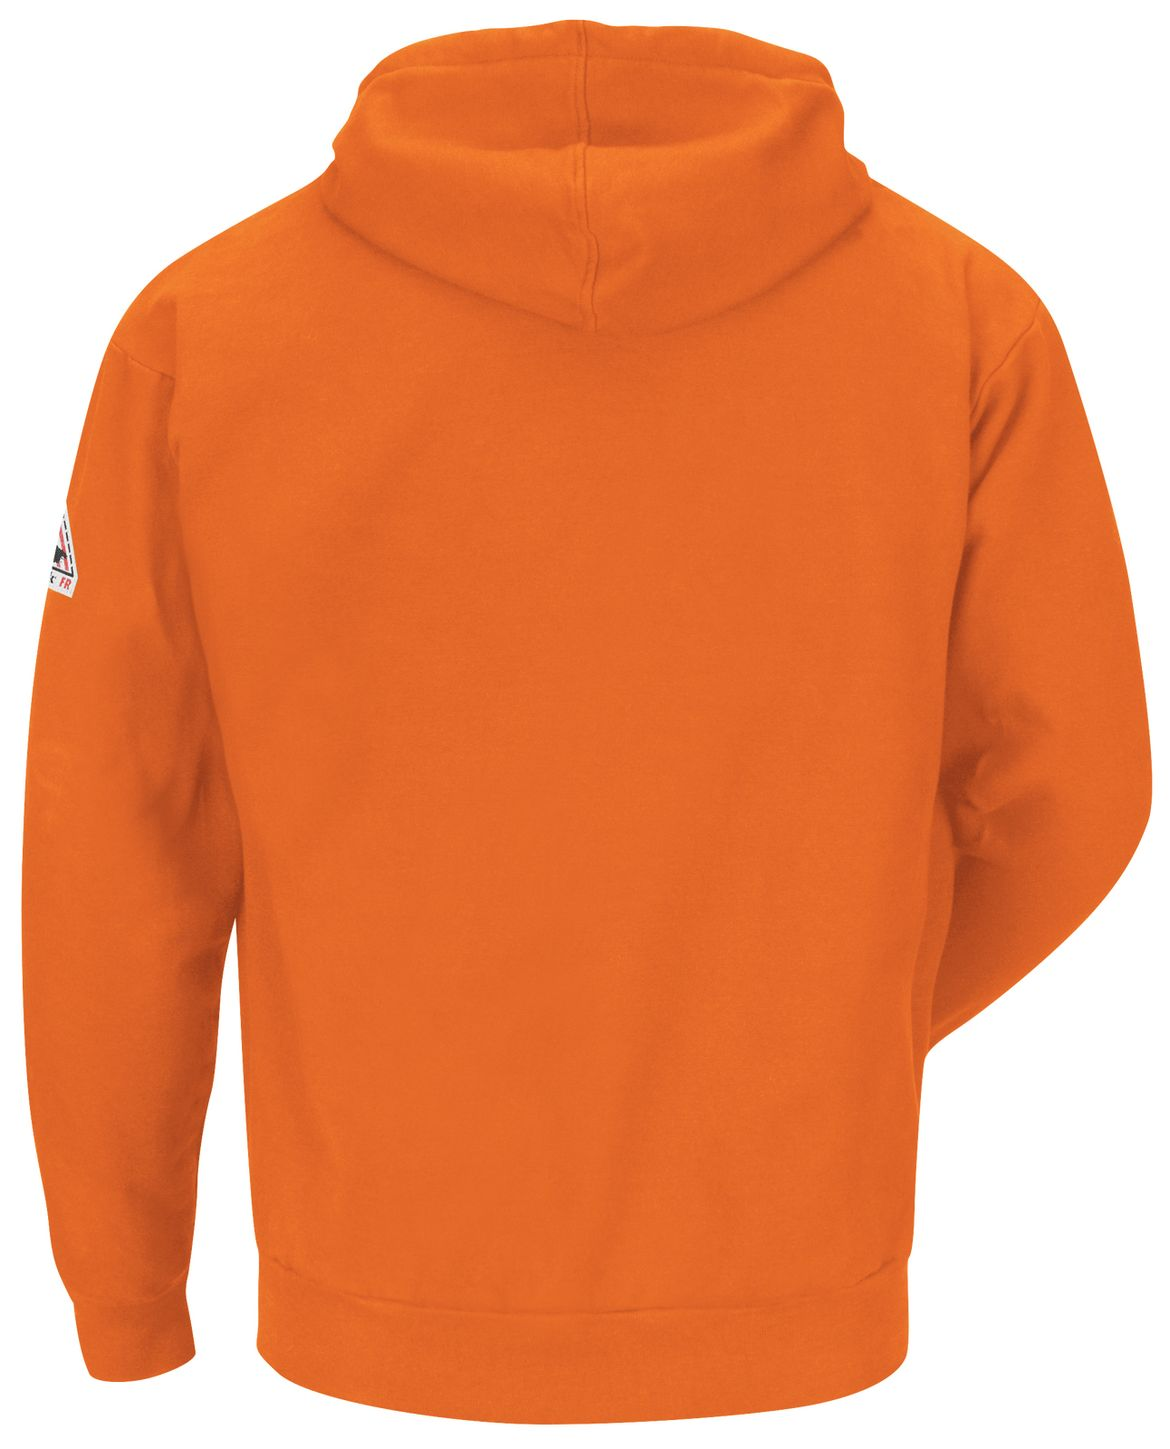 bulwark-fr-sweatshirt-seh4-hooded-fleece-zip-front-orange-back.jpg